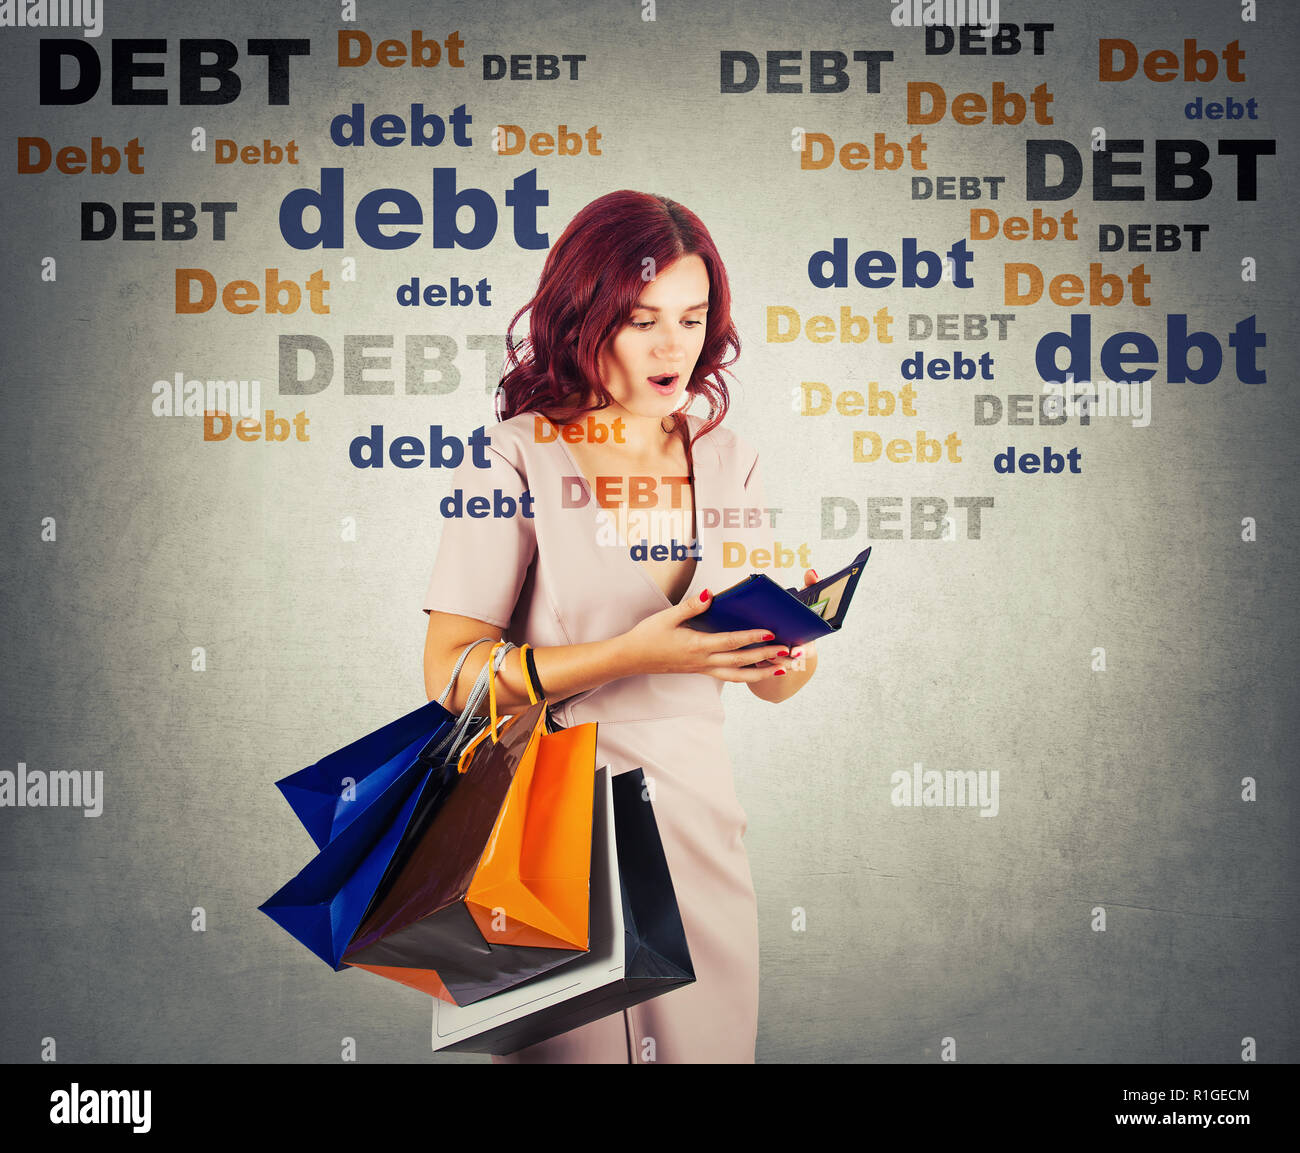 Young woman shopaholic carrying bags holding a empty wallet, shocked about huge debt amount, has no money for shopping in her pouch. Overspending conc - Stock Image